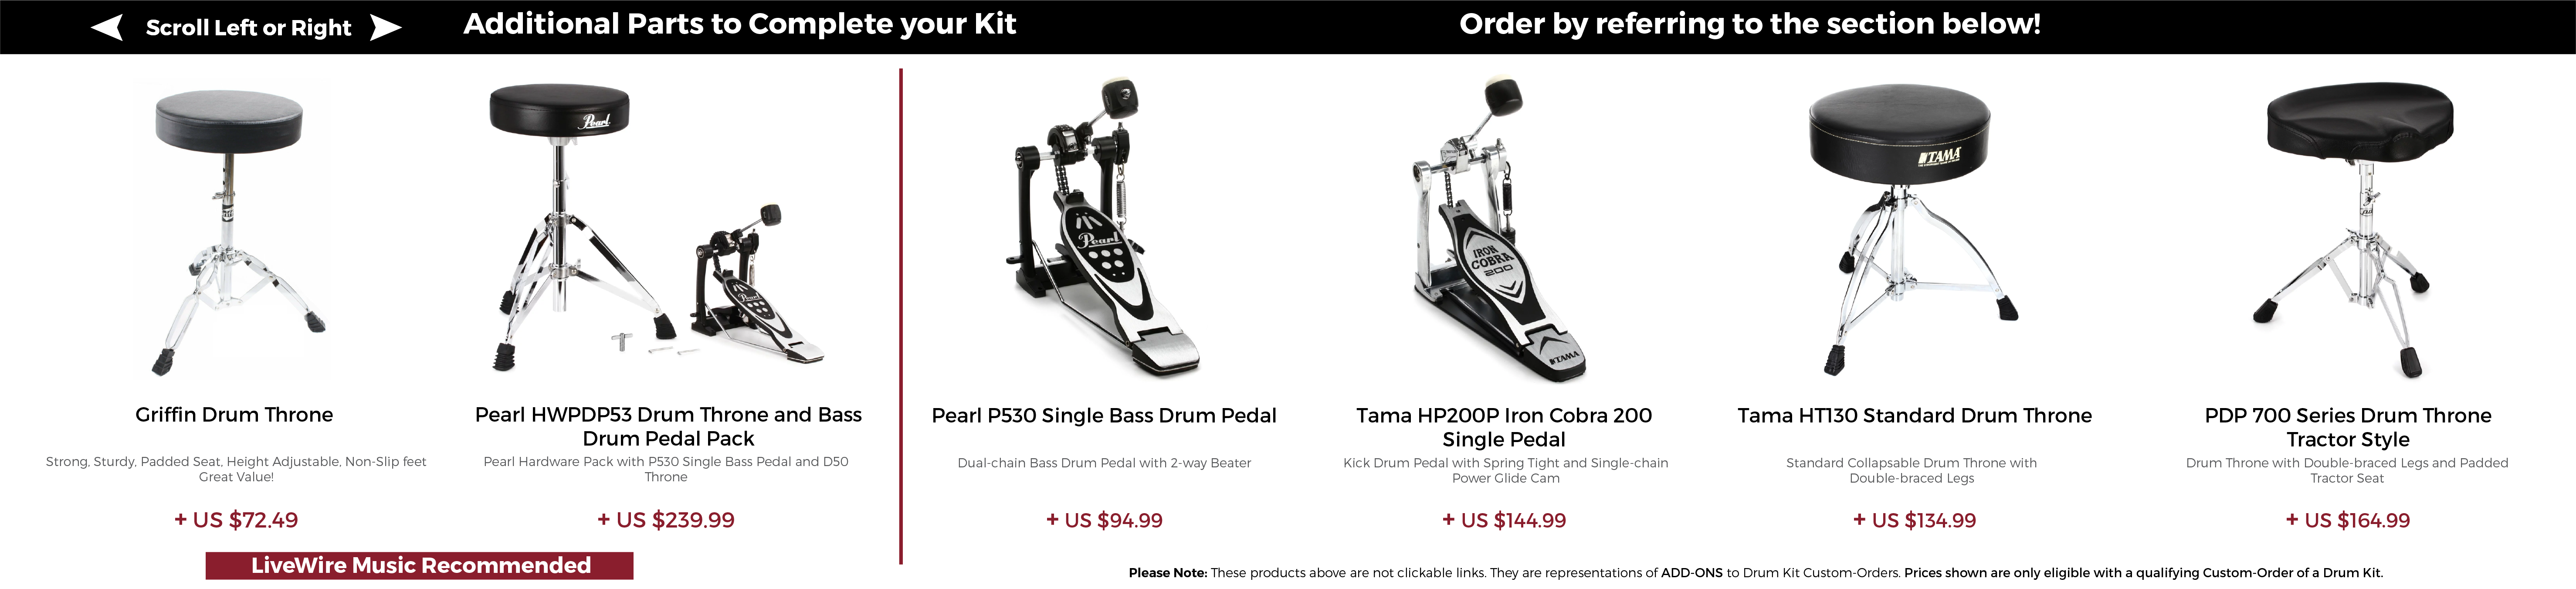 LW-Drums-Accessories-Options.png